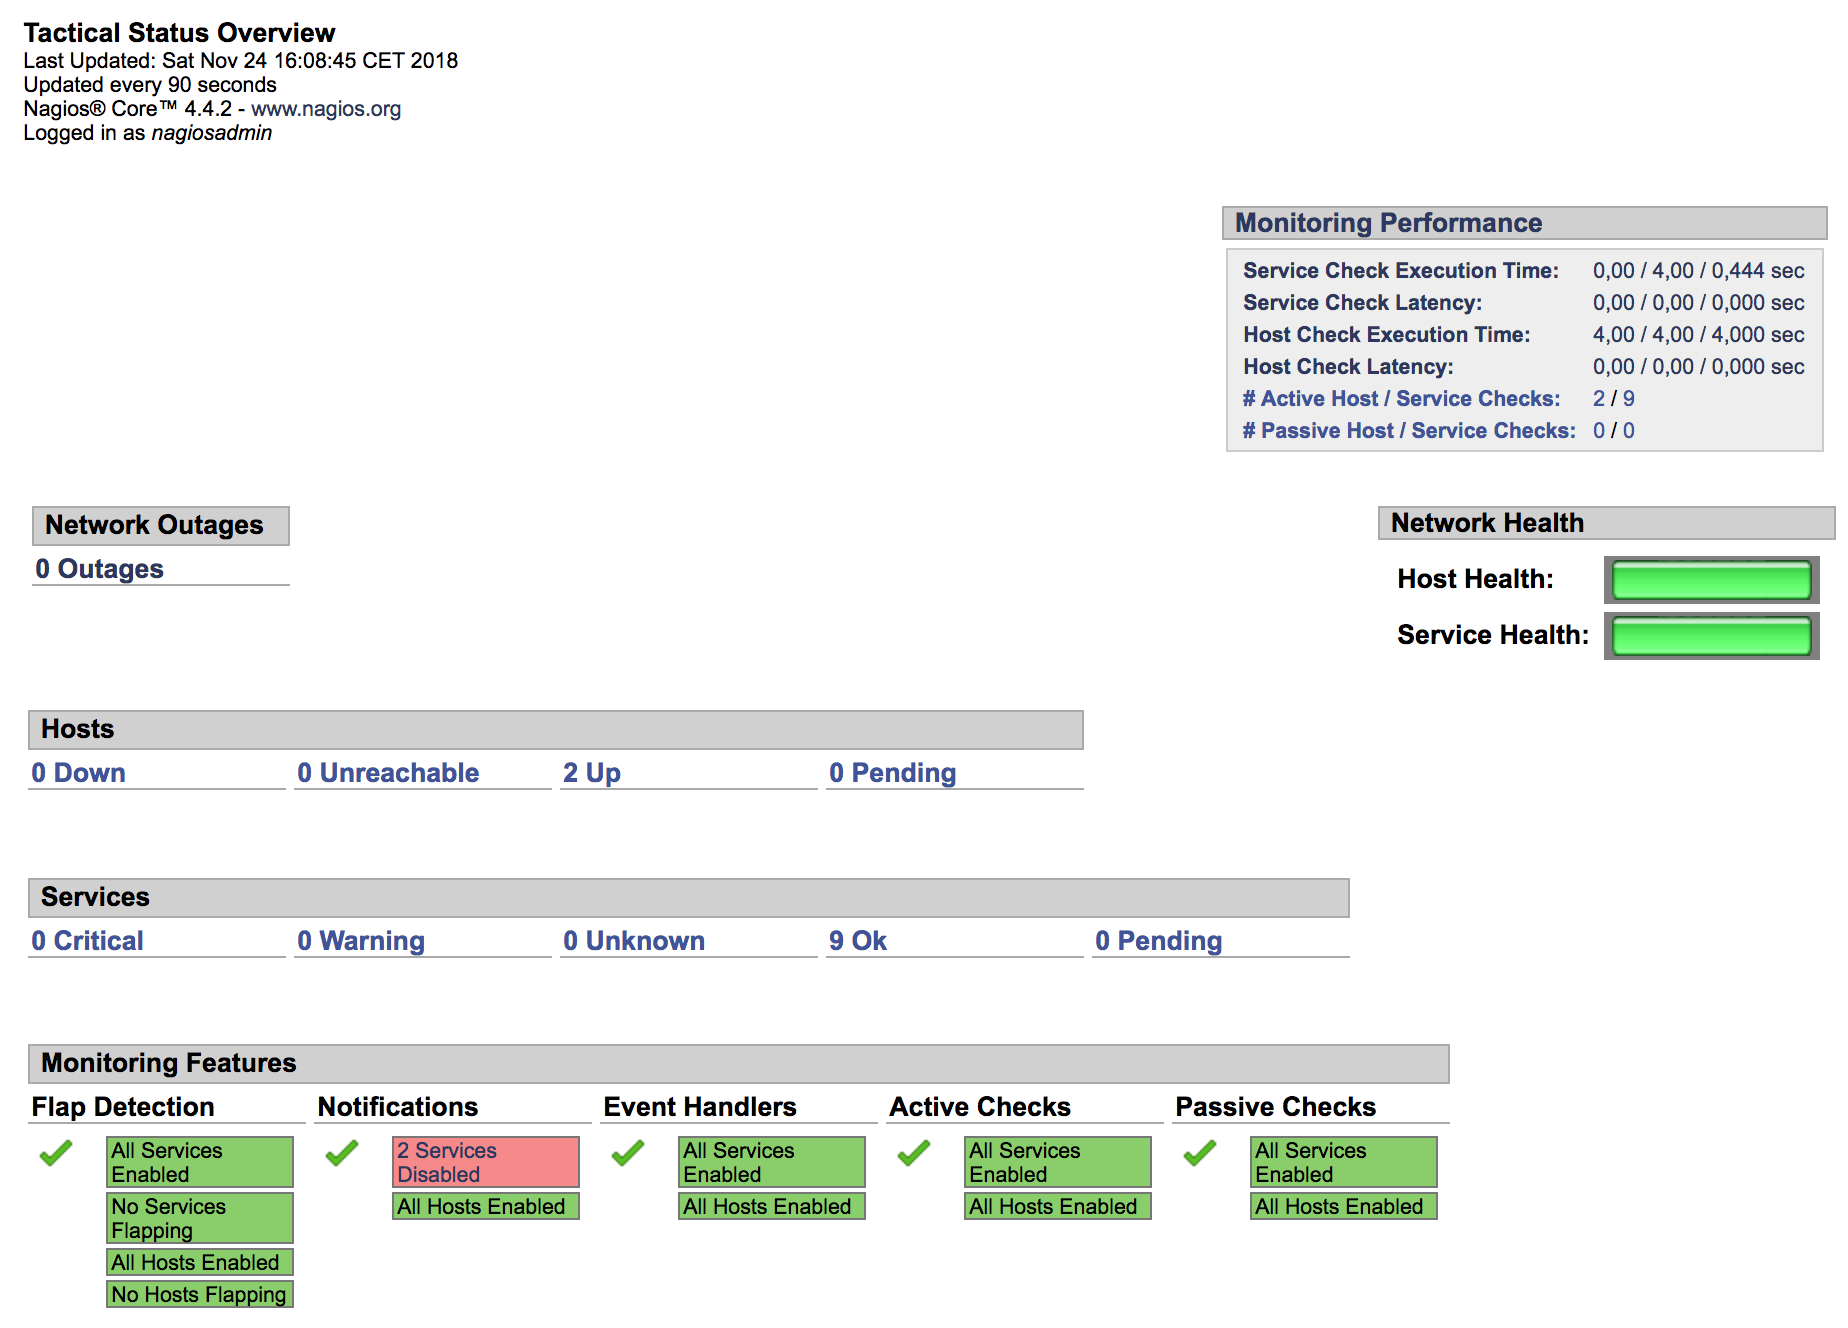 Page « Tactical Overview » de Nagios